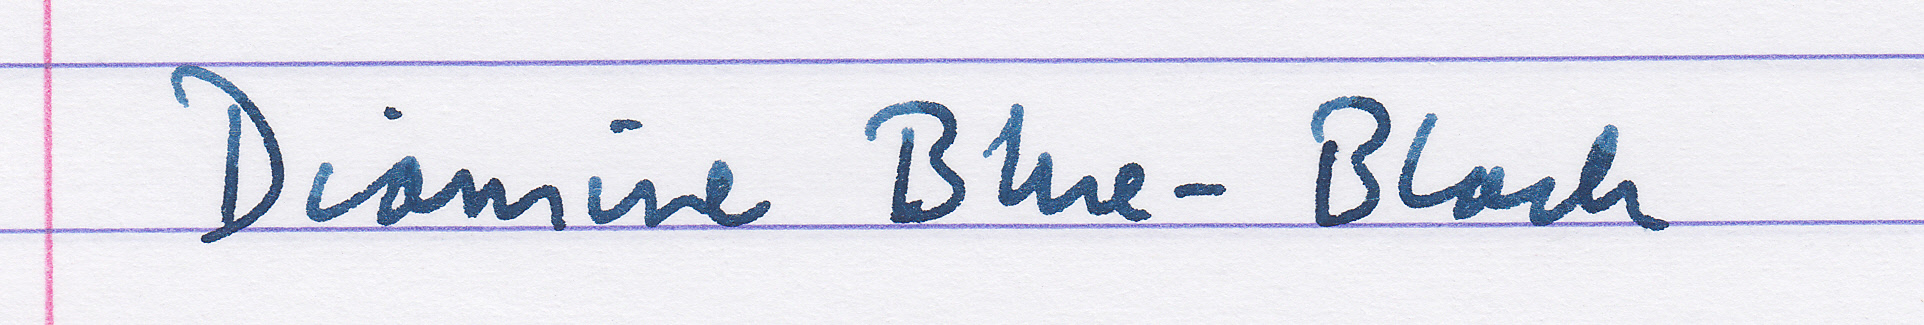 fpn_1346448285__new_diamine_blue-black_r